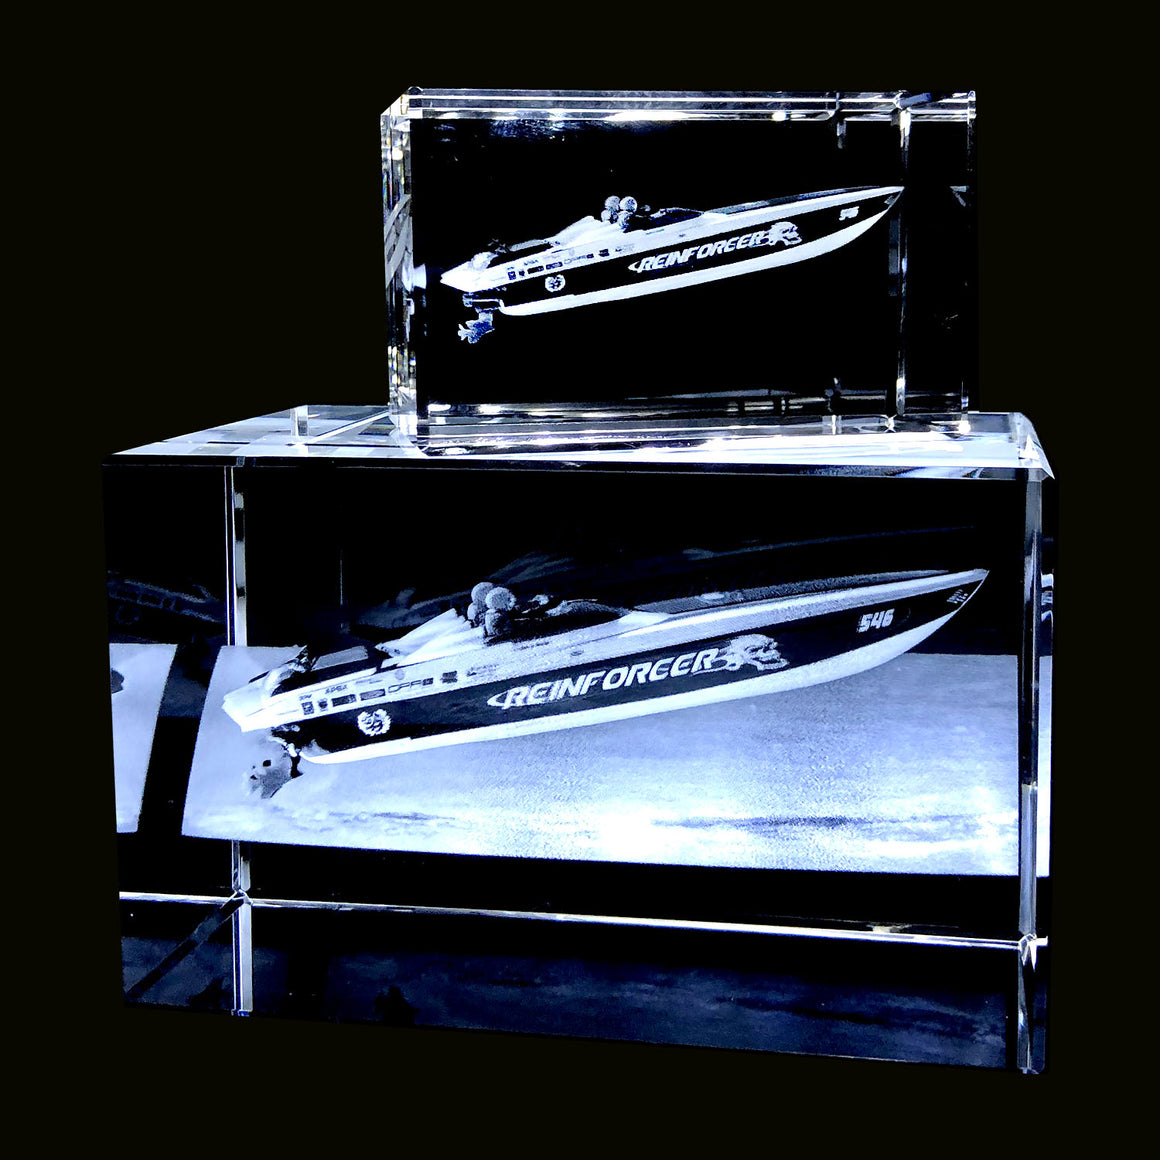 RECTANGULAR LANDSCAPE  OF YOUR BOAT  or VEHICLE 3D IN SMALL CRYSTAL